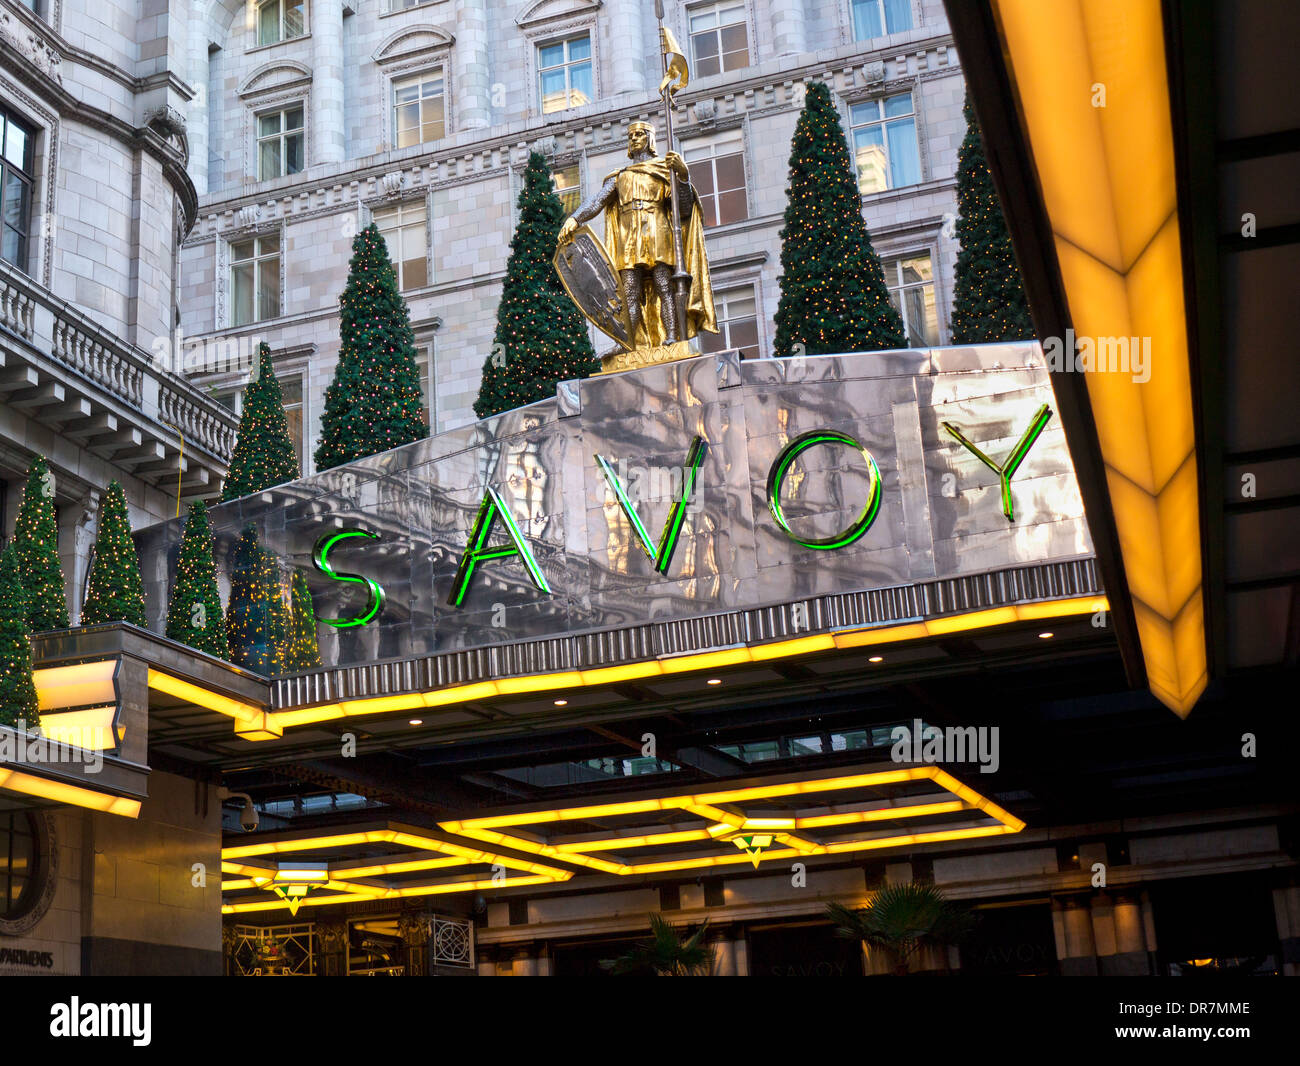 Exterior view of luxury Five-Star Savoy Hotel entrance foyer at Christmas The Strand London WC2 - Stock Image